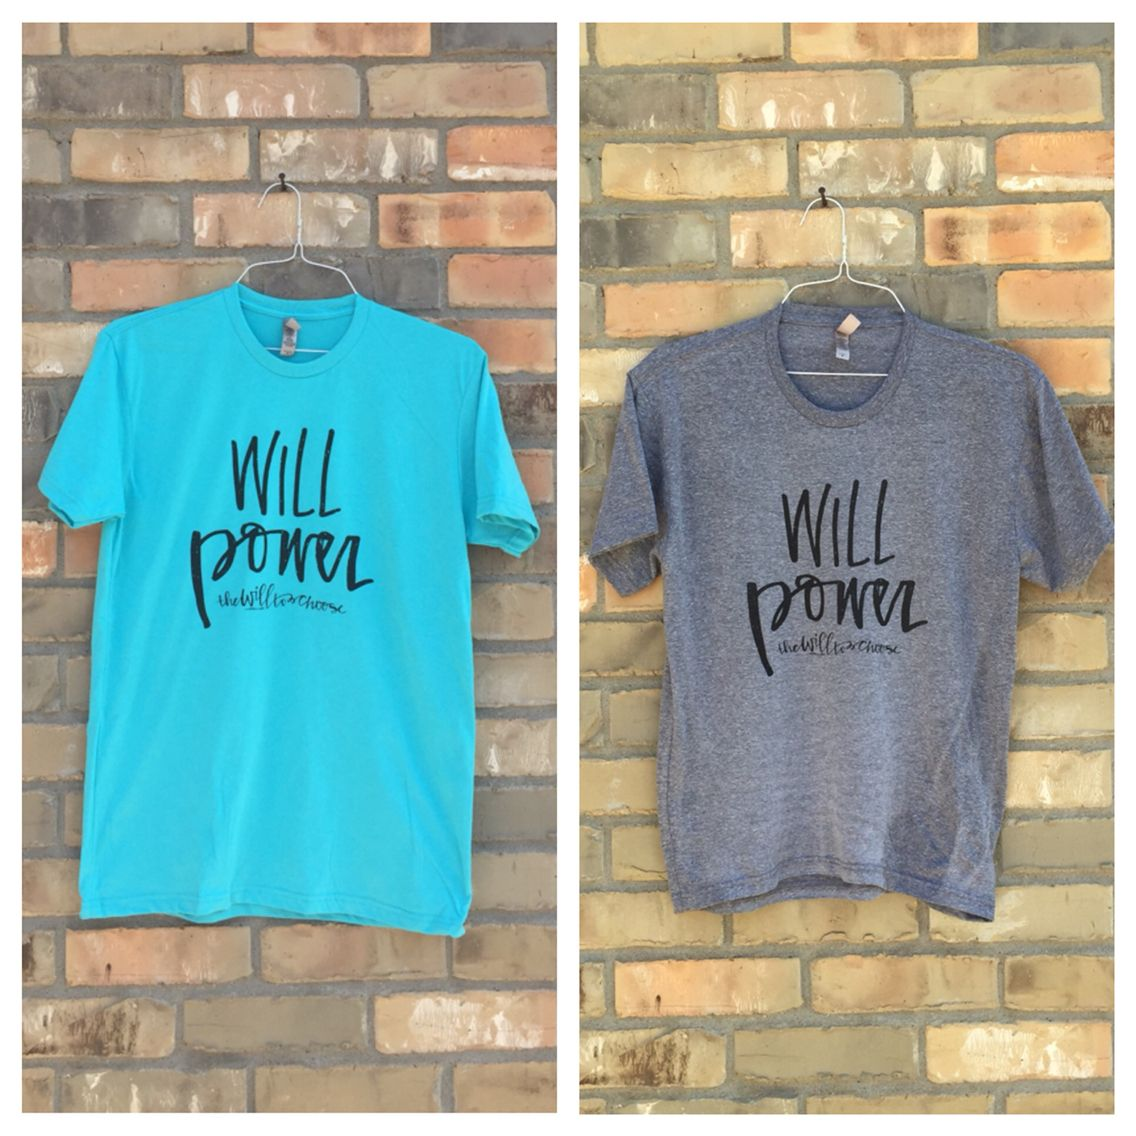 Buy these shirts to support a good cause! Find out more at www.thewilltochoose.com